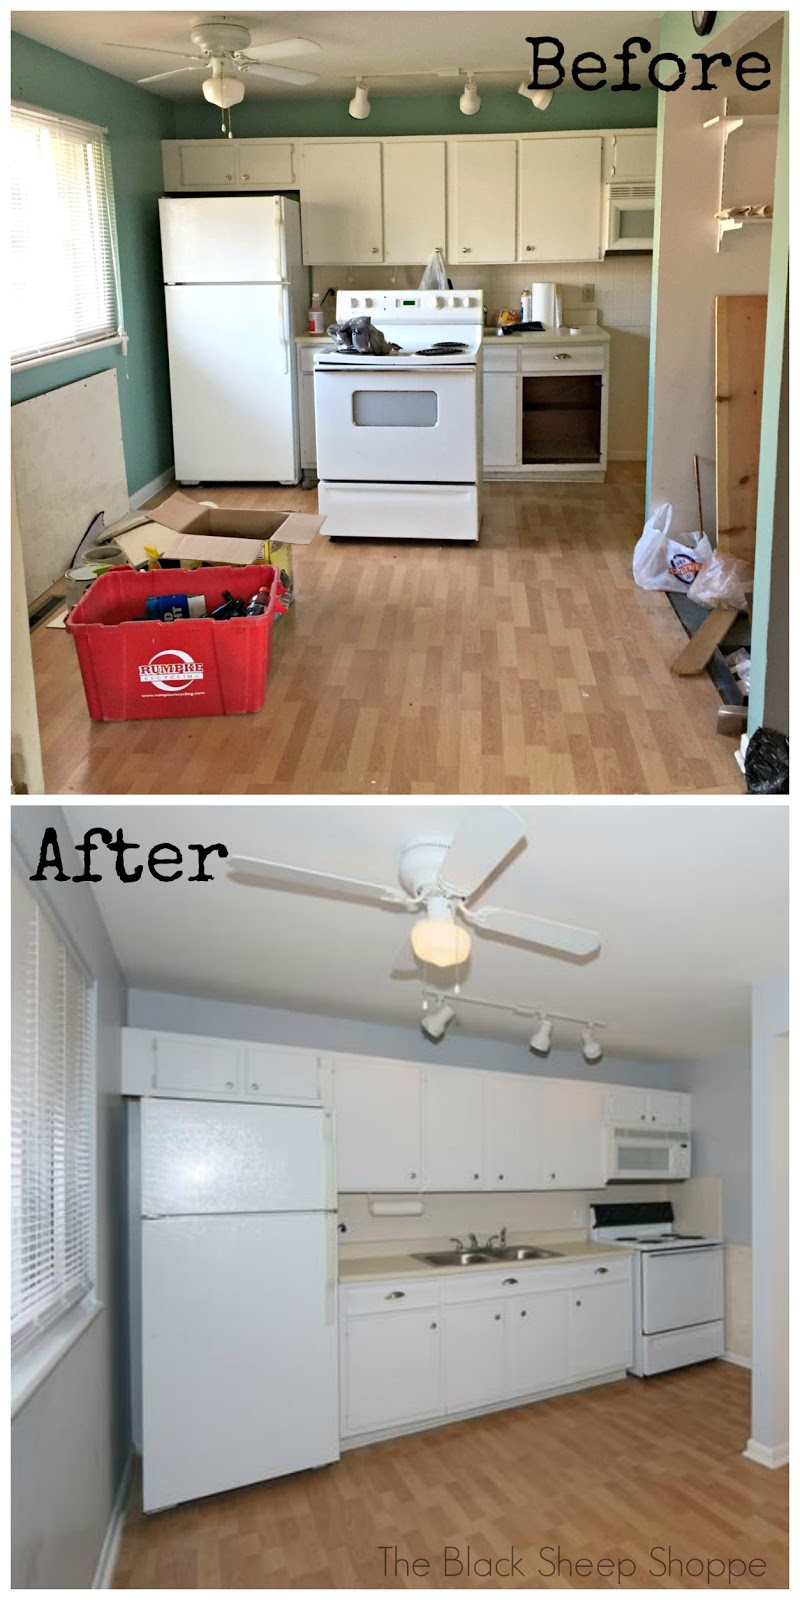 Rental house kitchen before and after